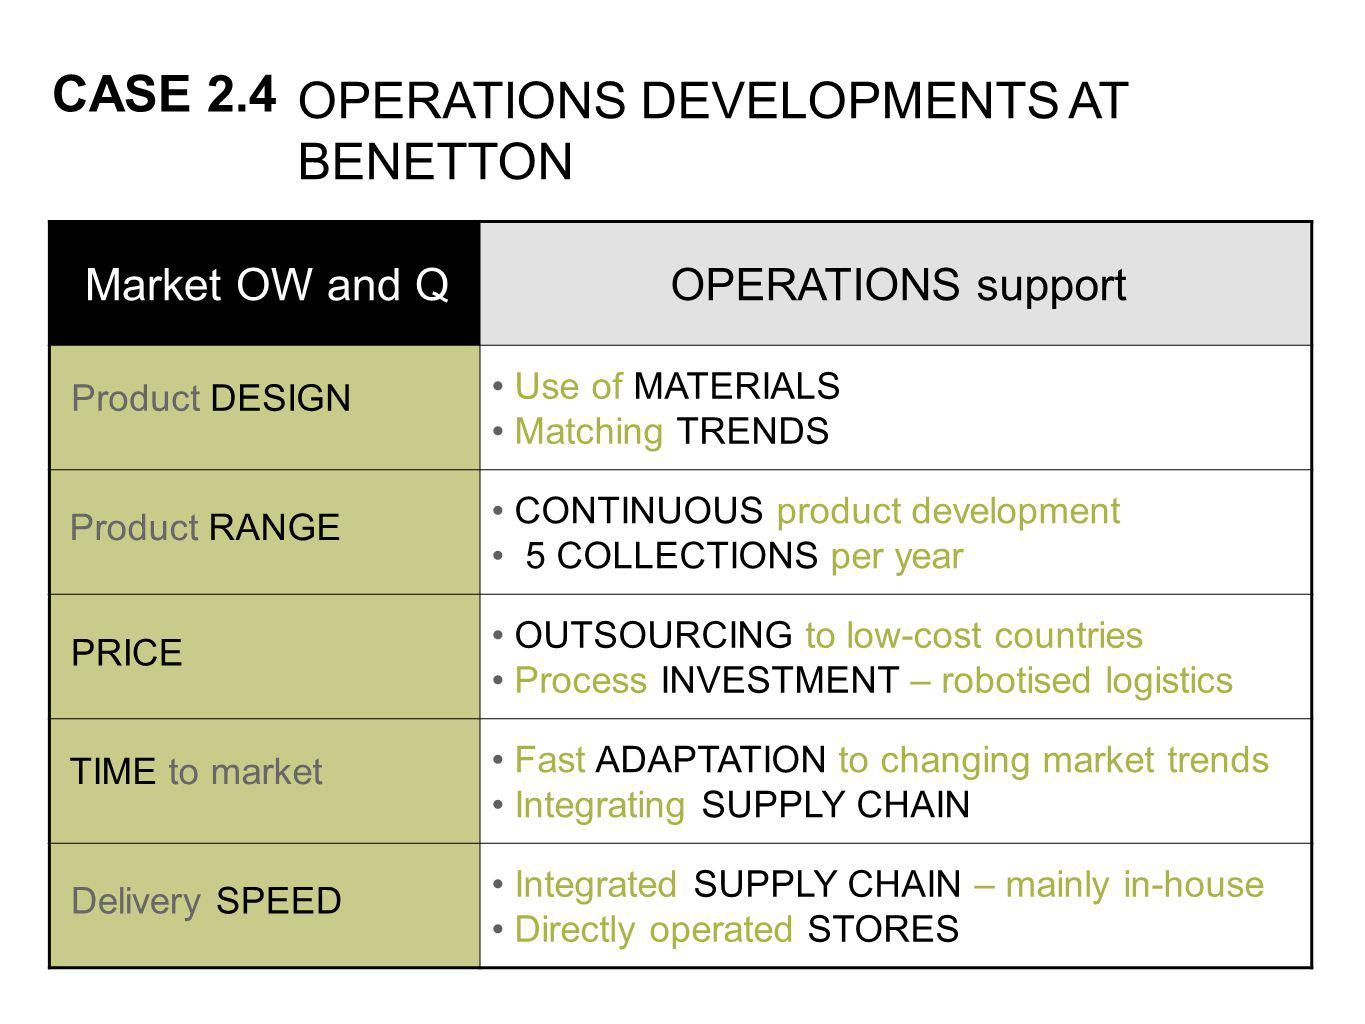 OPERATIONS DEVELOPMENTS AT BENETTON